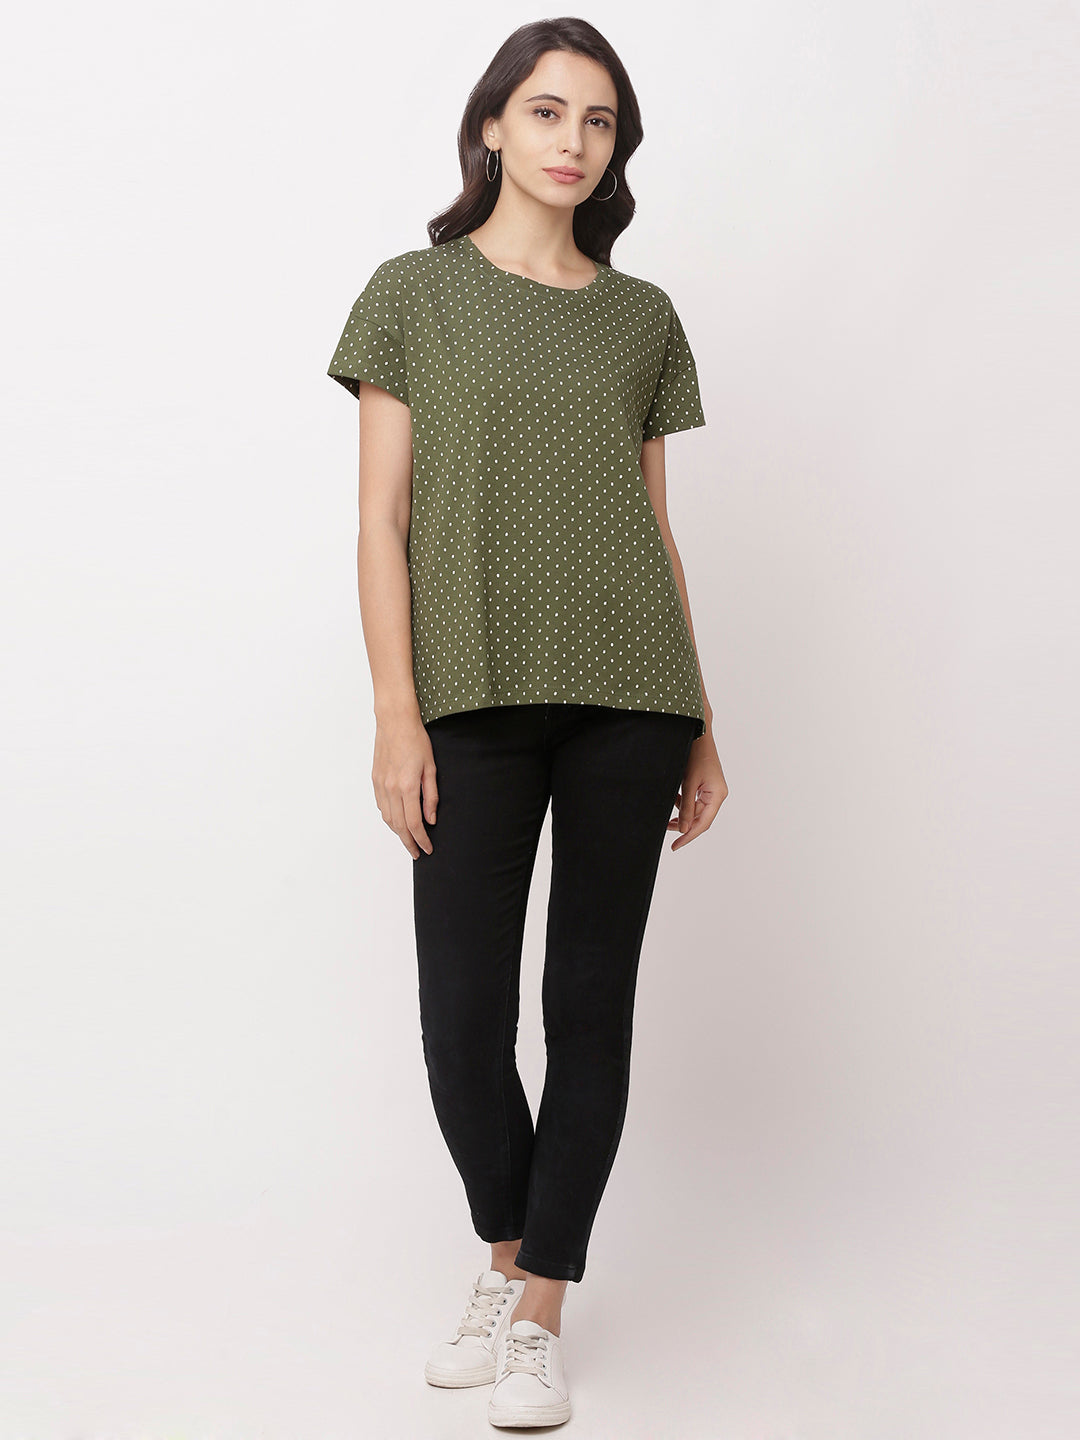 Globus Green Round Neck Printed Top-1